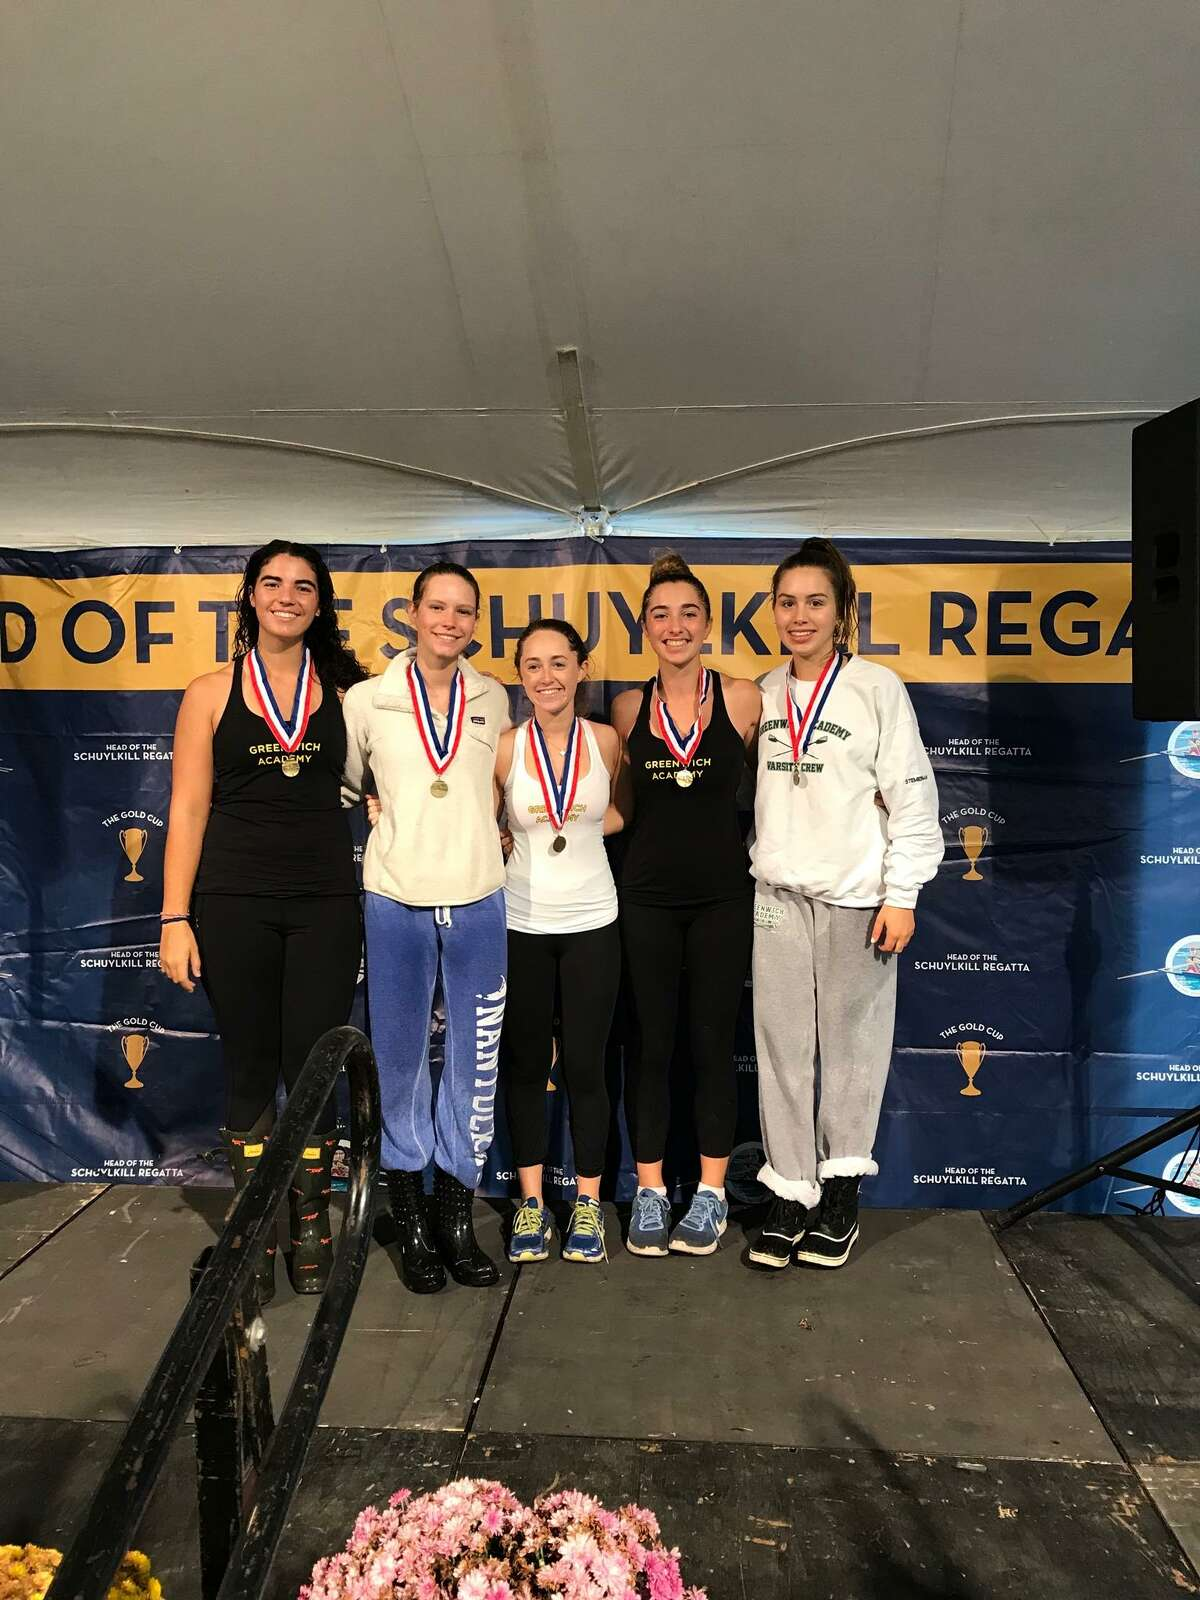 Greenwich Academy placed third in the women's high school fours varsity race at the Head of the Schuylkill Regatta in Philadelphia, Pa., last weekend.